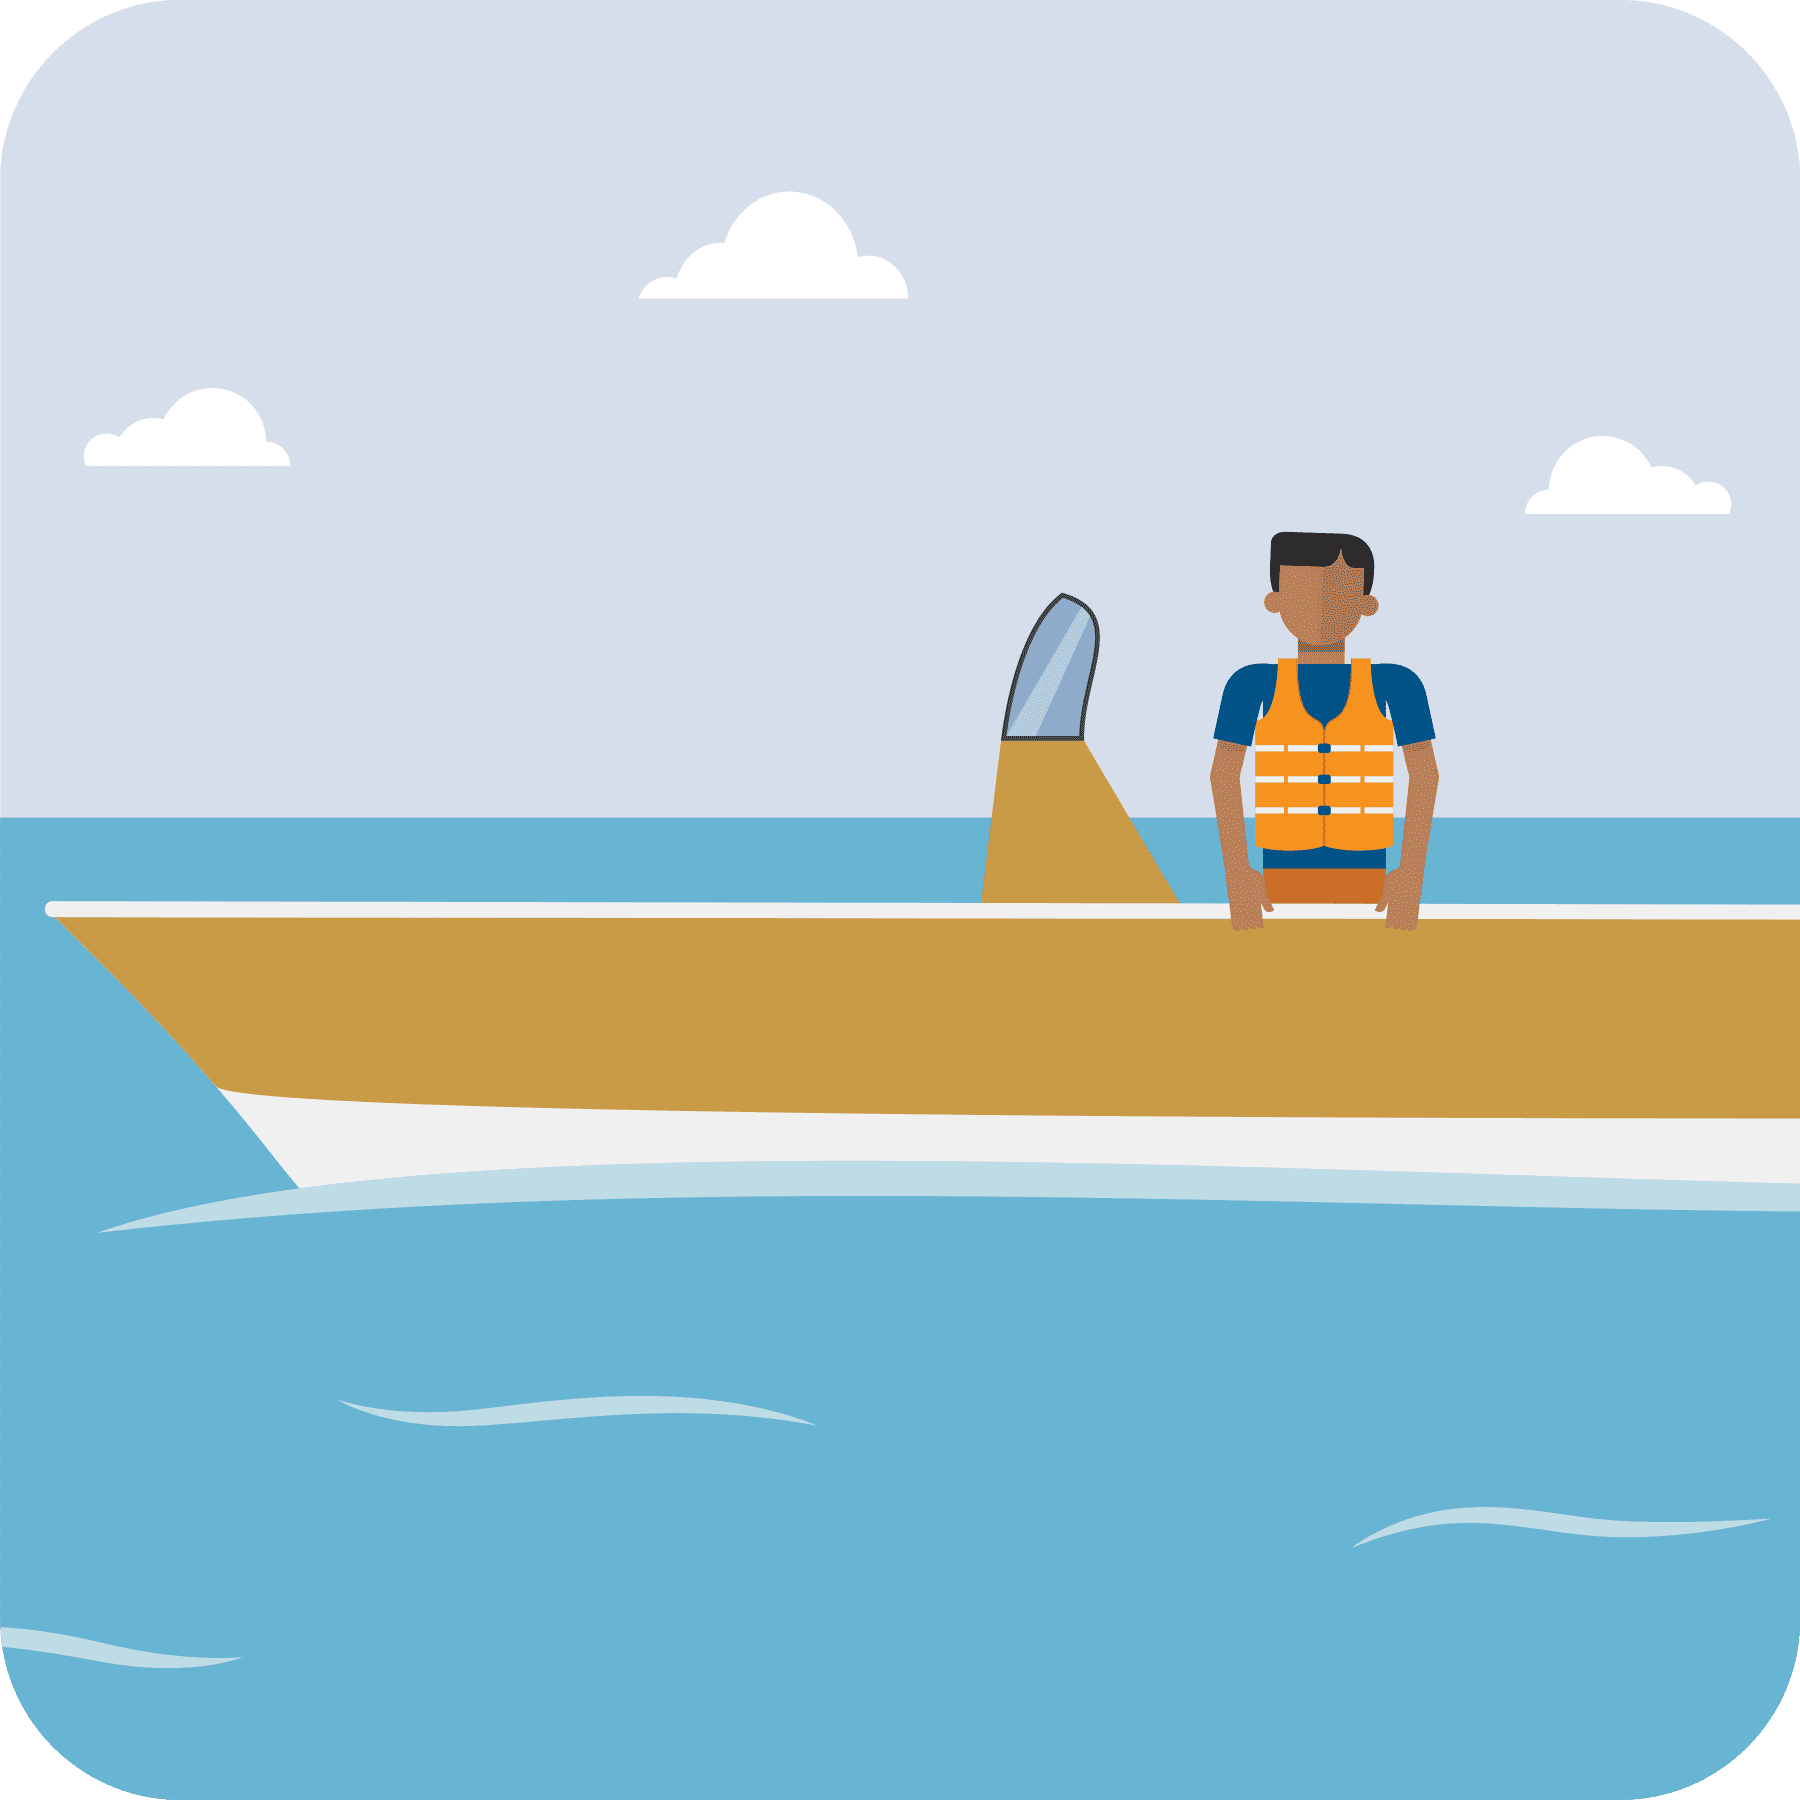 Man on a boat wearing a life jacket.